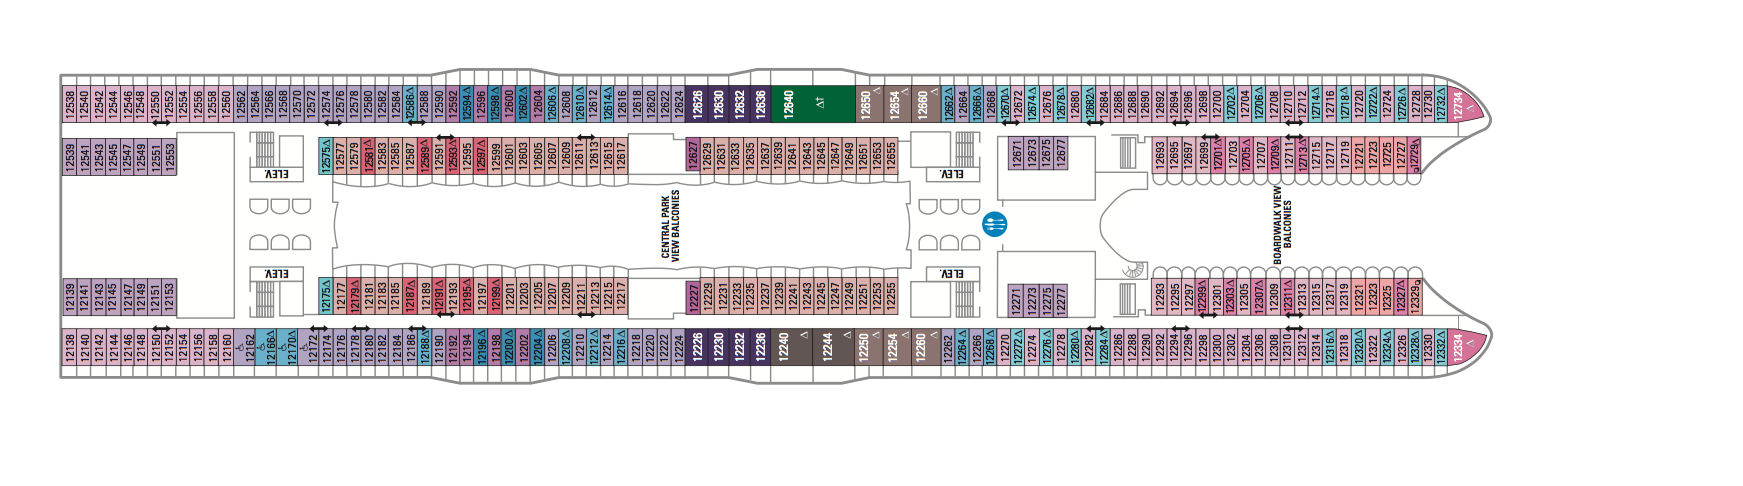 Royal Caribbean International Symphony of the Seas Deck Plans Deck 12.png